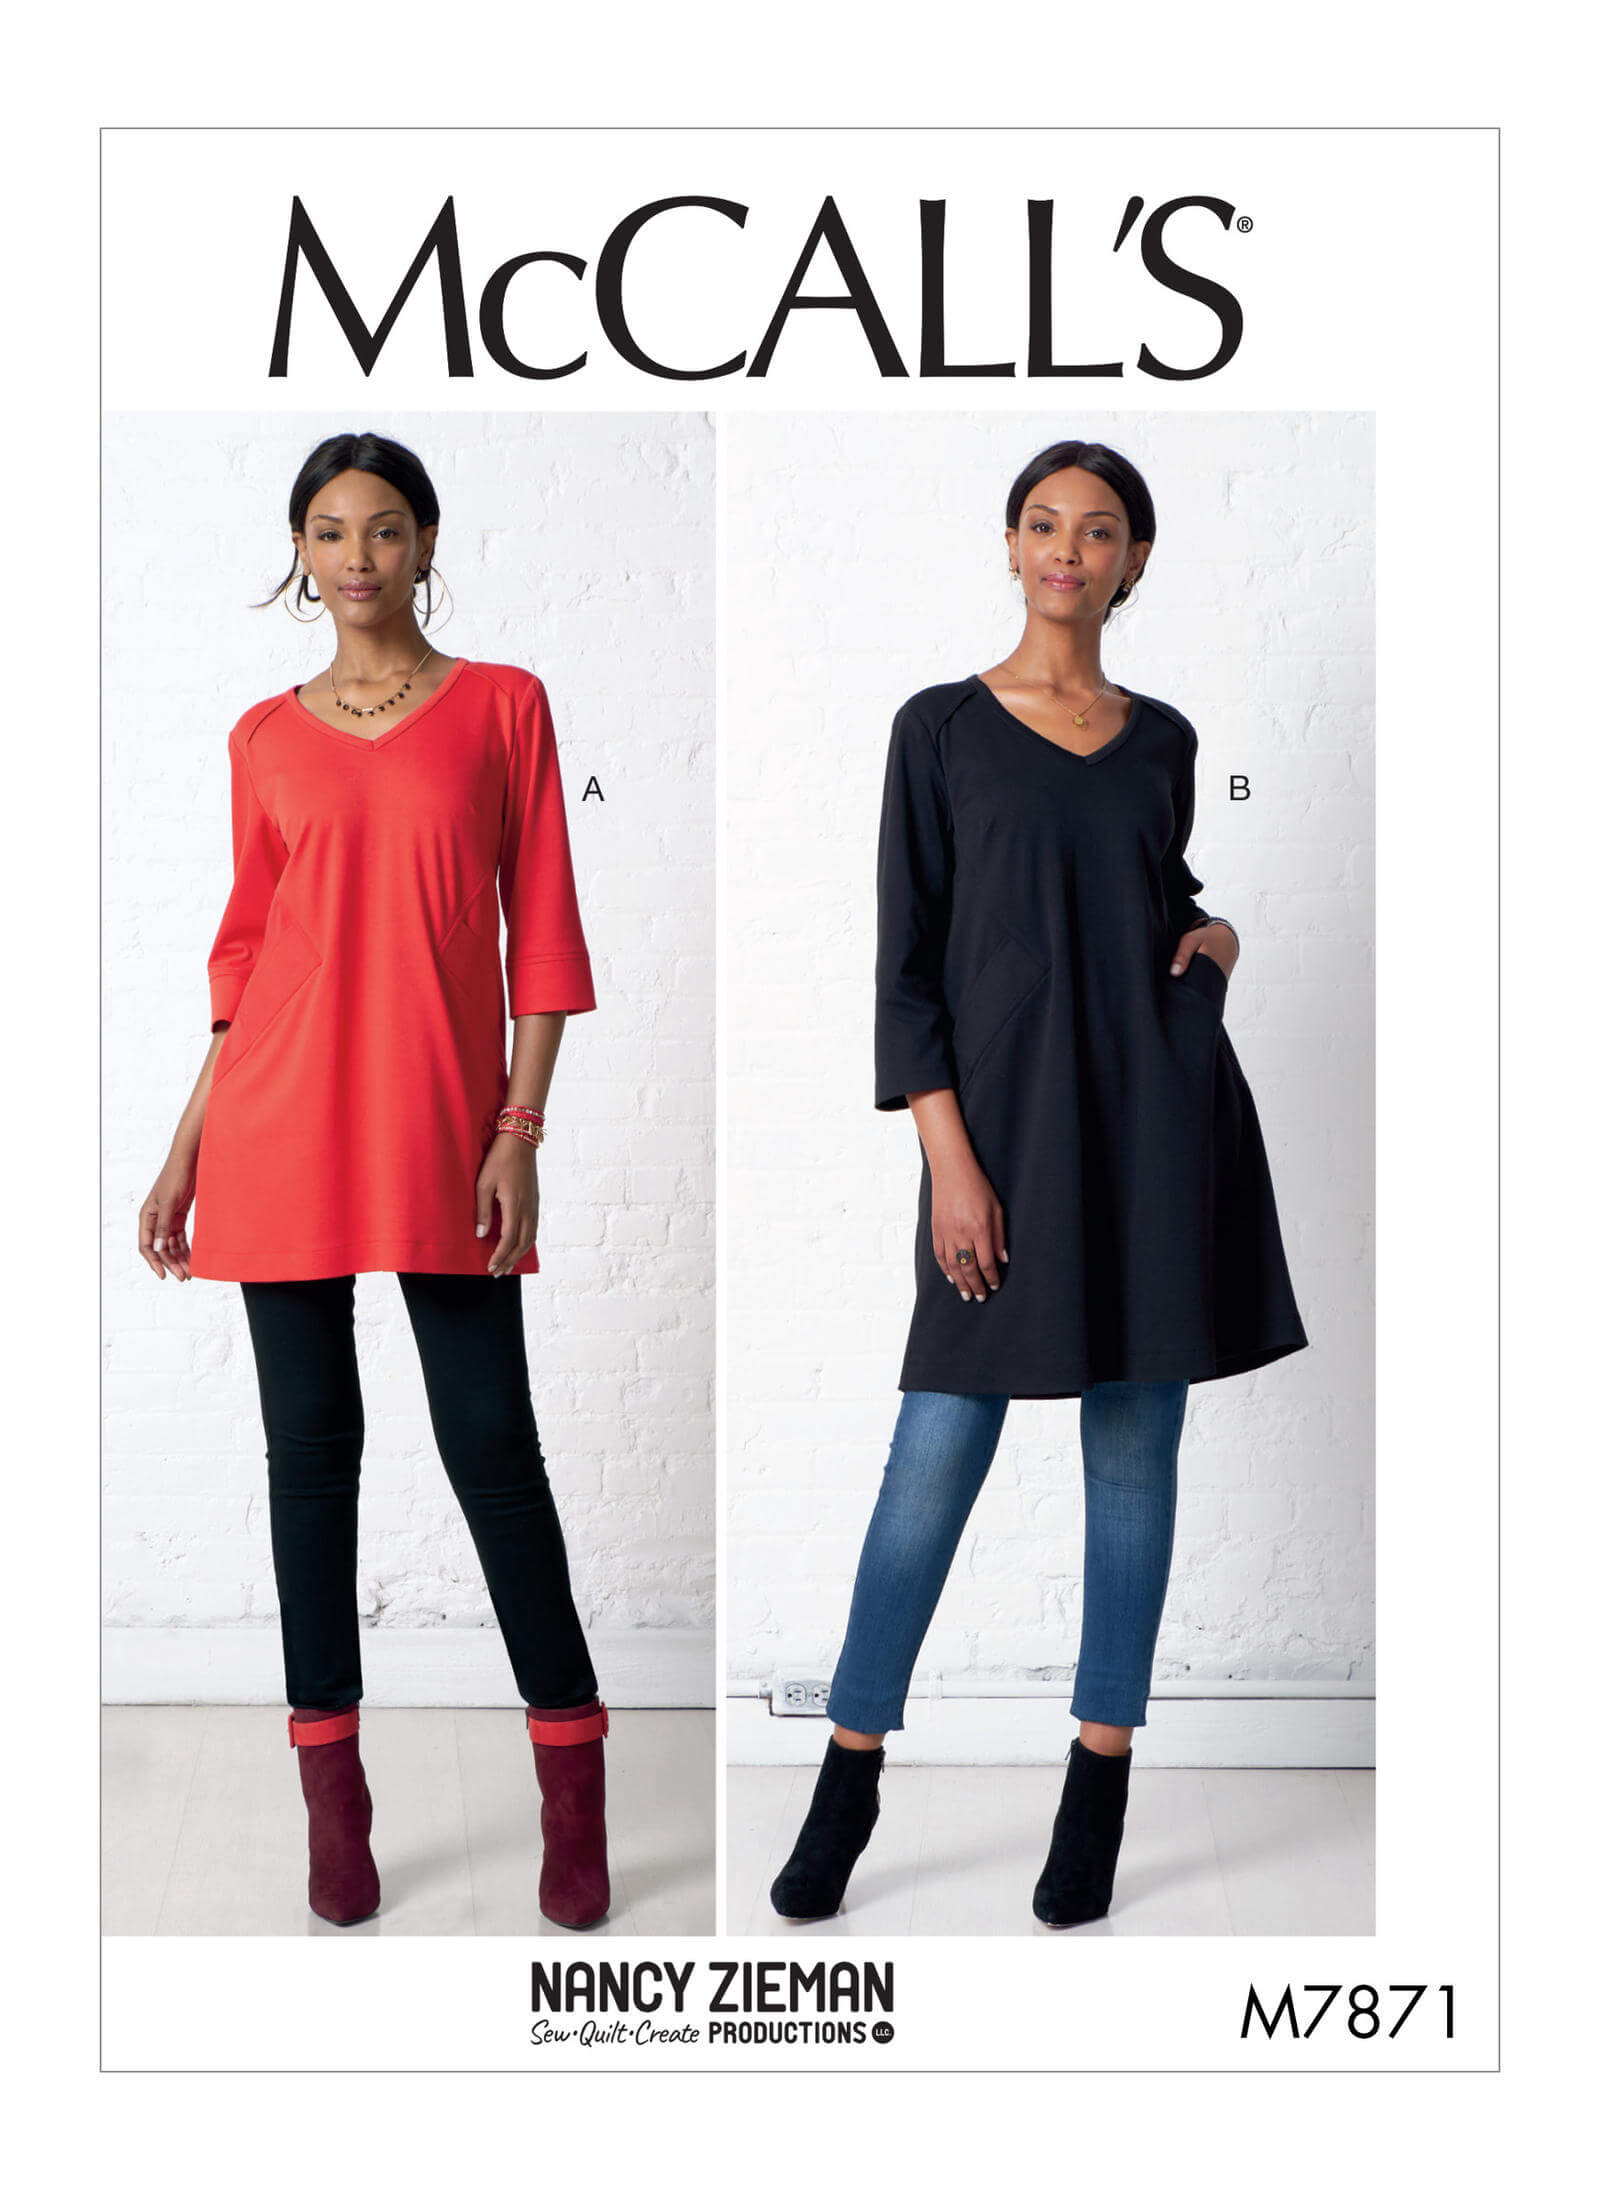 McCalls M7871 Knit Tunics and Dress Pattern by Nancy Zieman Productions